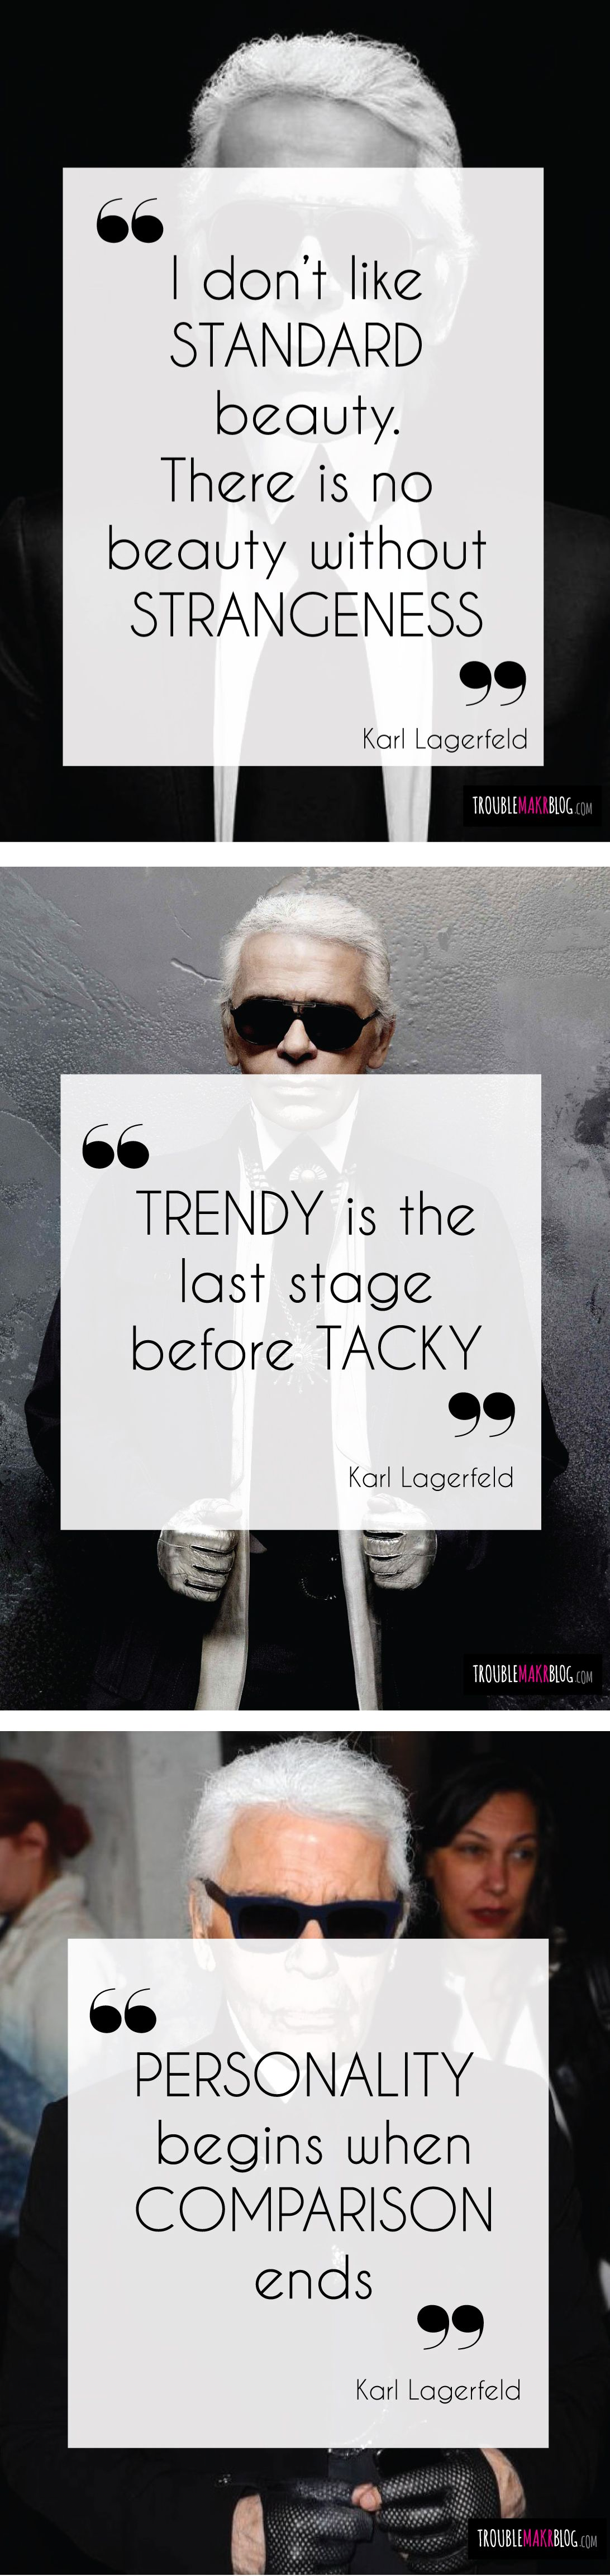 karl lagerfeld quotes, quotations, fashion | Nice 'n Wise